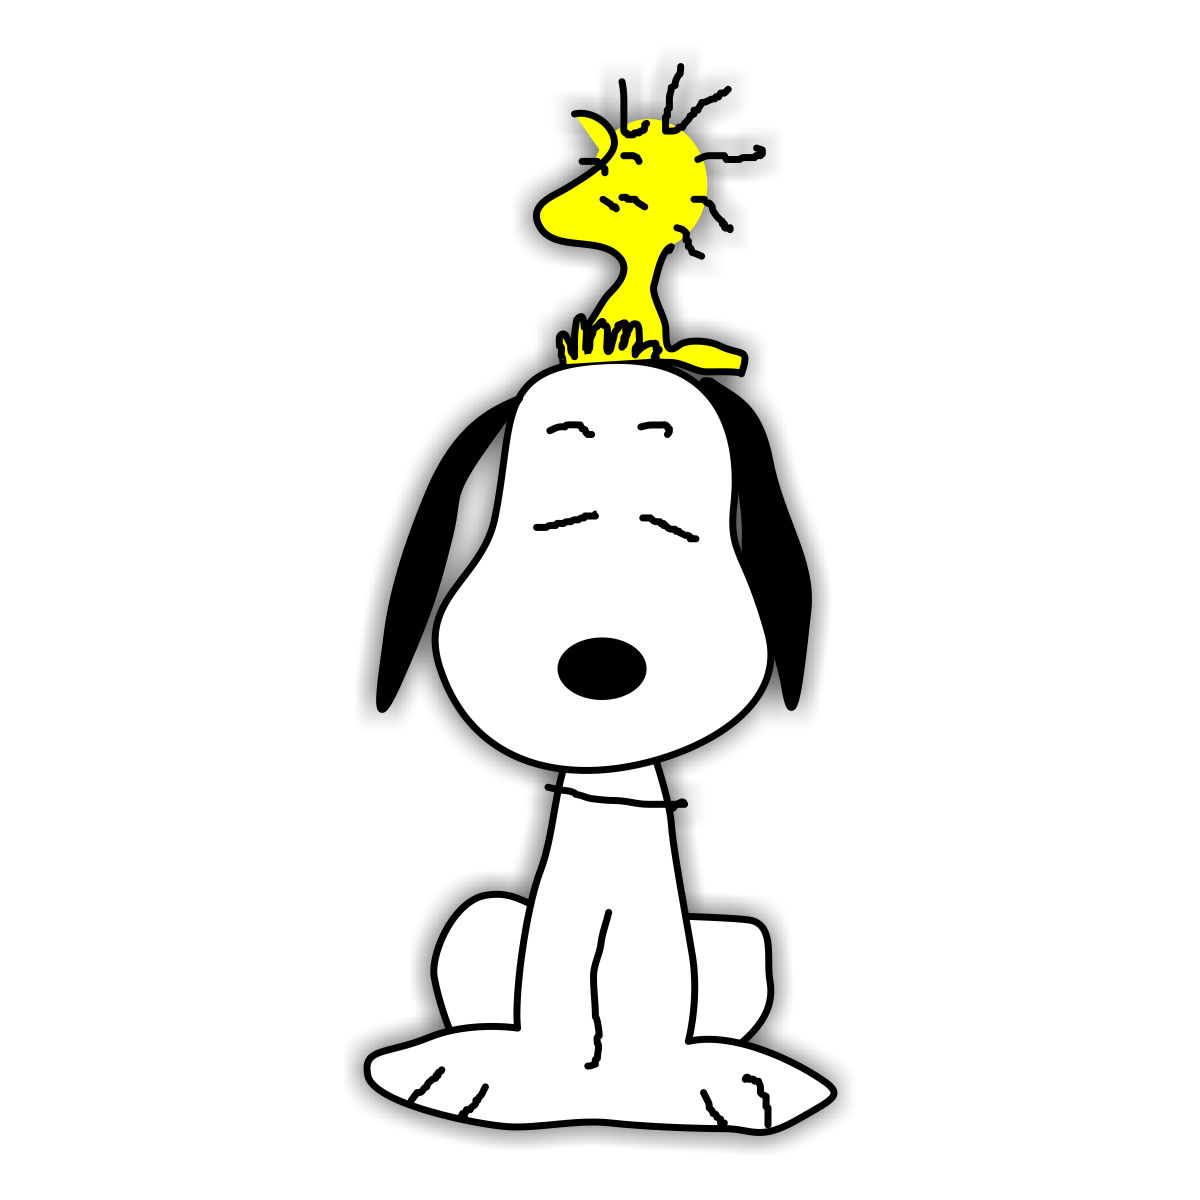 Snoopy Is A Fictional Character In The Long Running Comic Strip